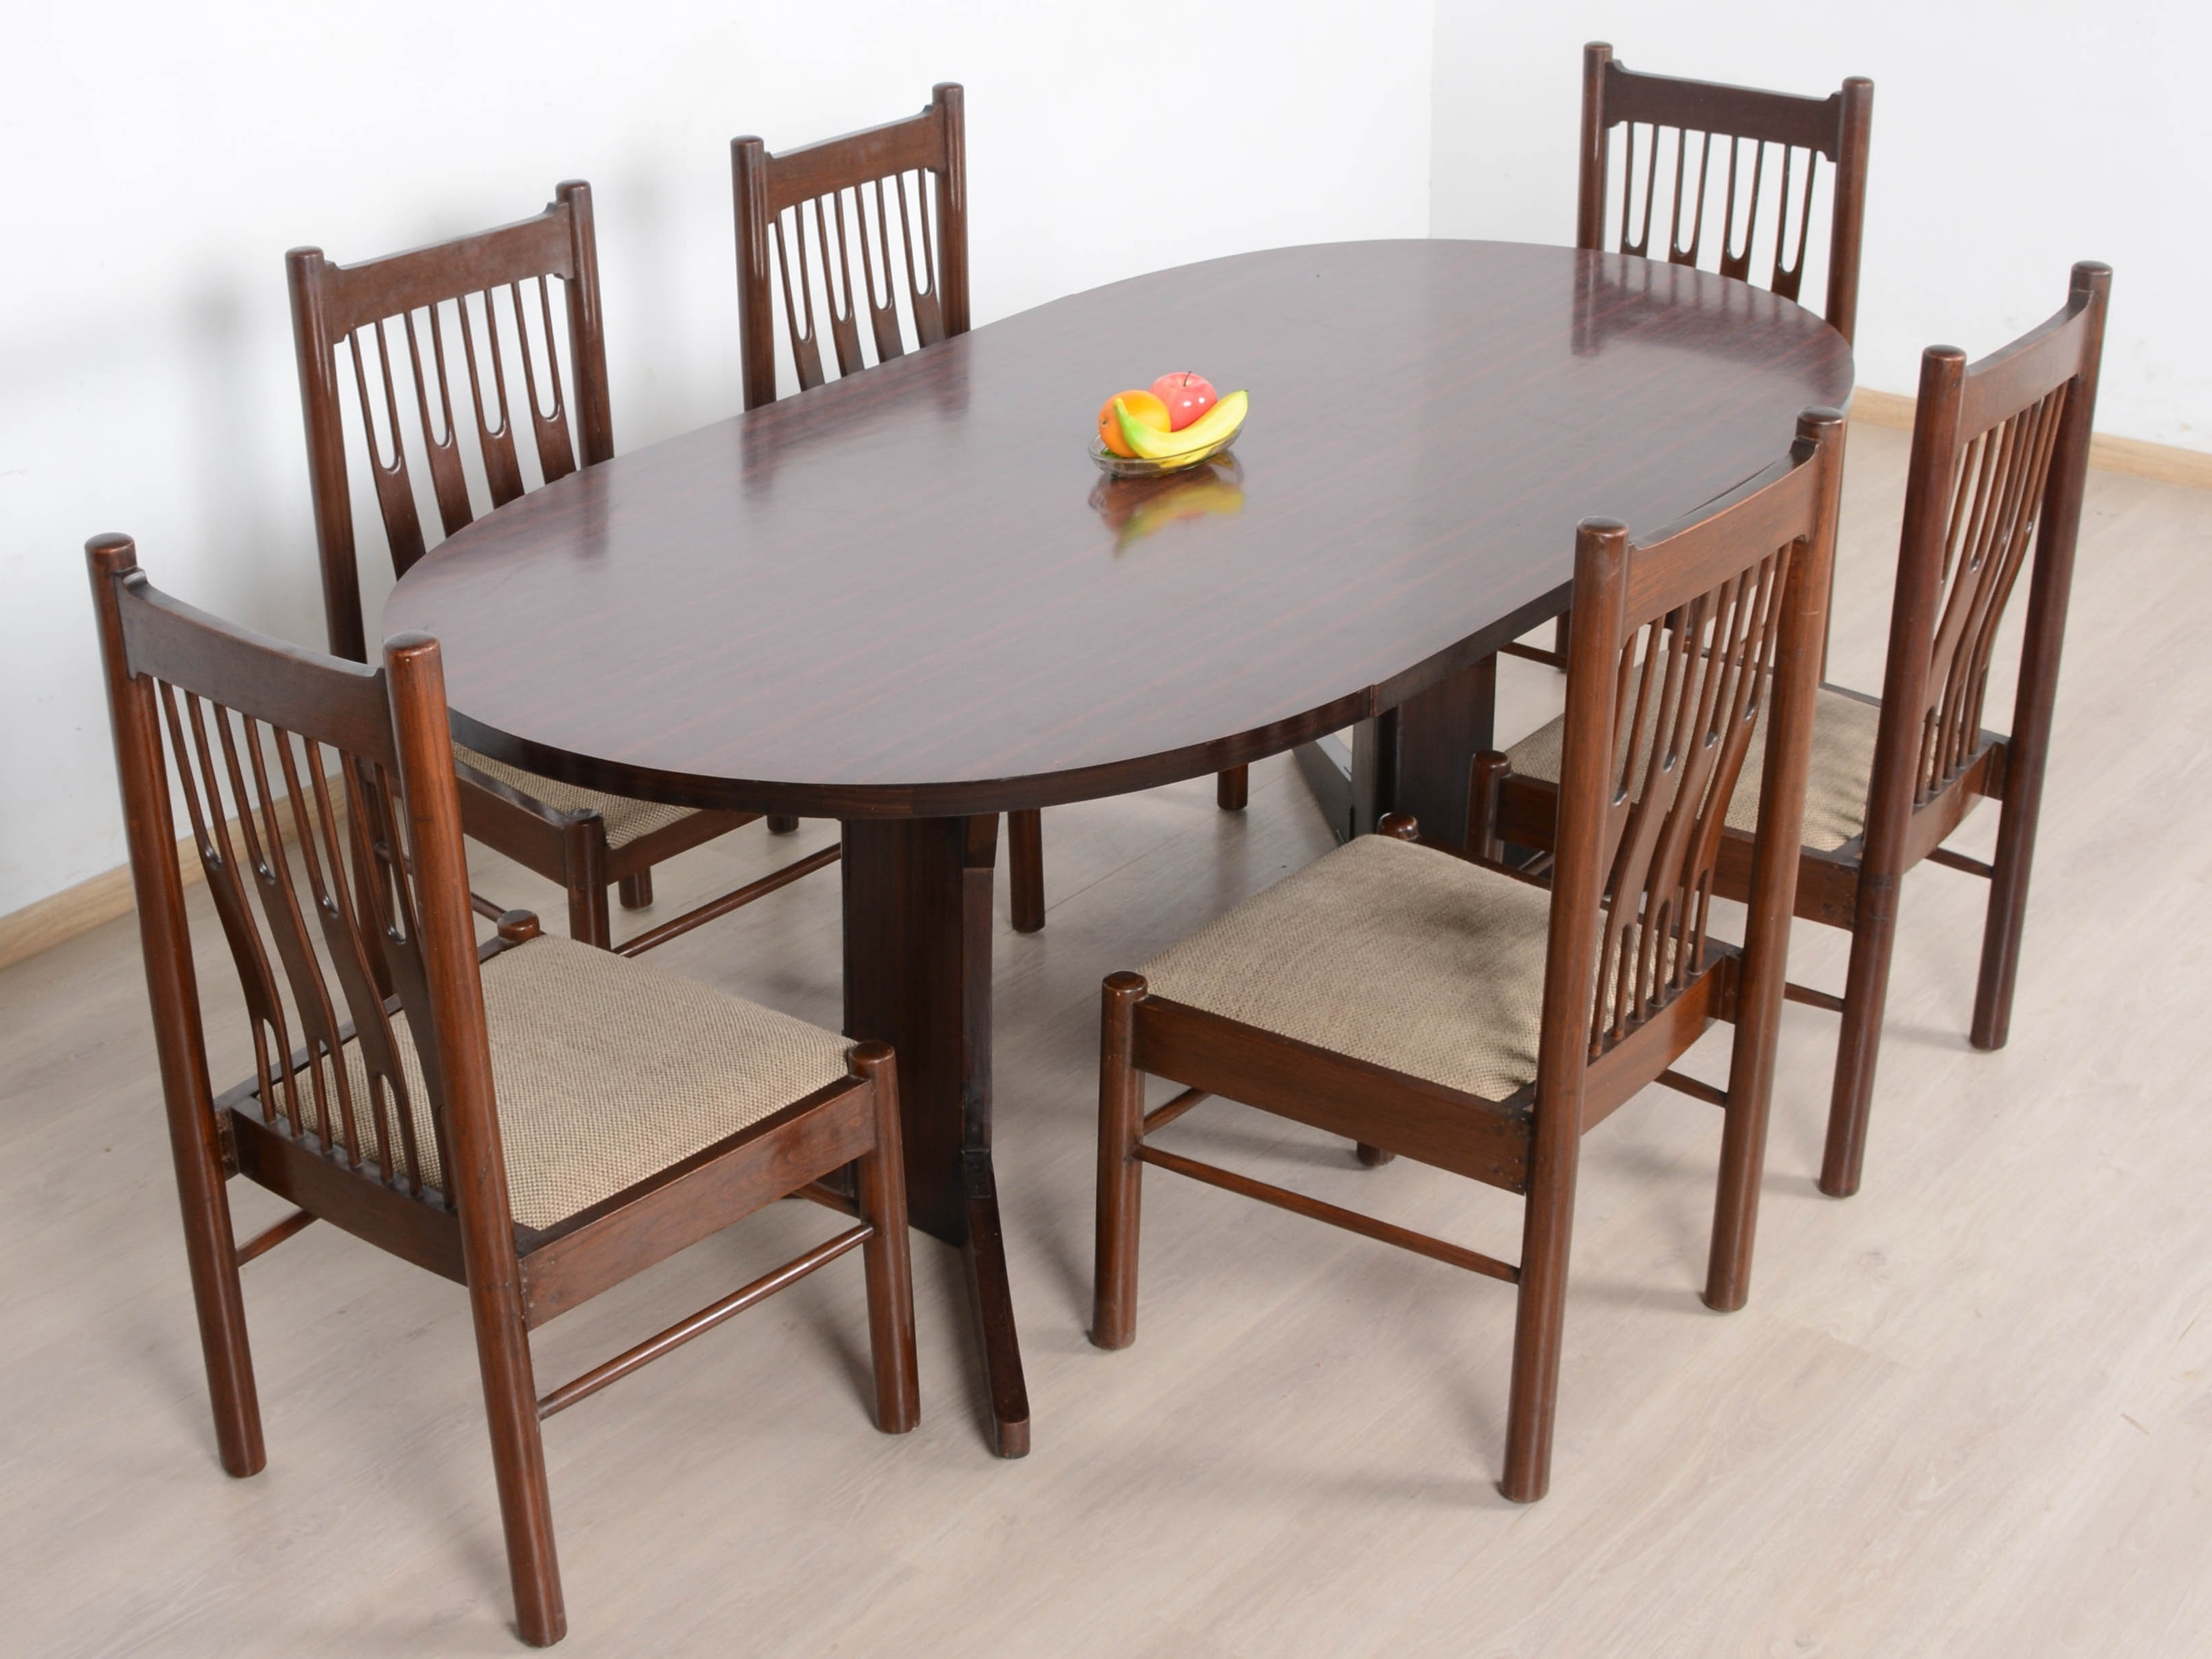 Mason Teak 6 Seater Dining Table Set: Buy And Sell Used Furniture In Regarding Recent 6 Seater Dining Tables (View 17 of 25)